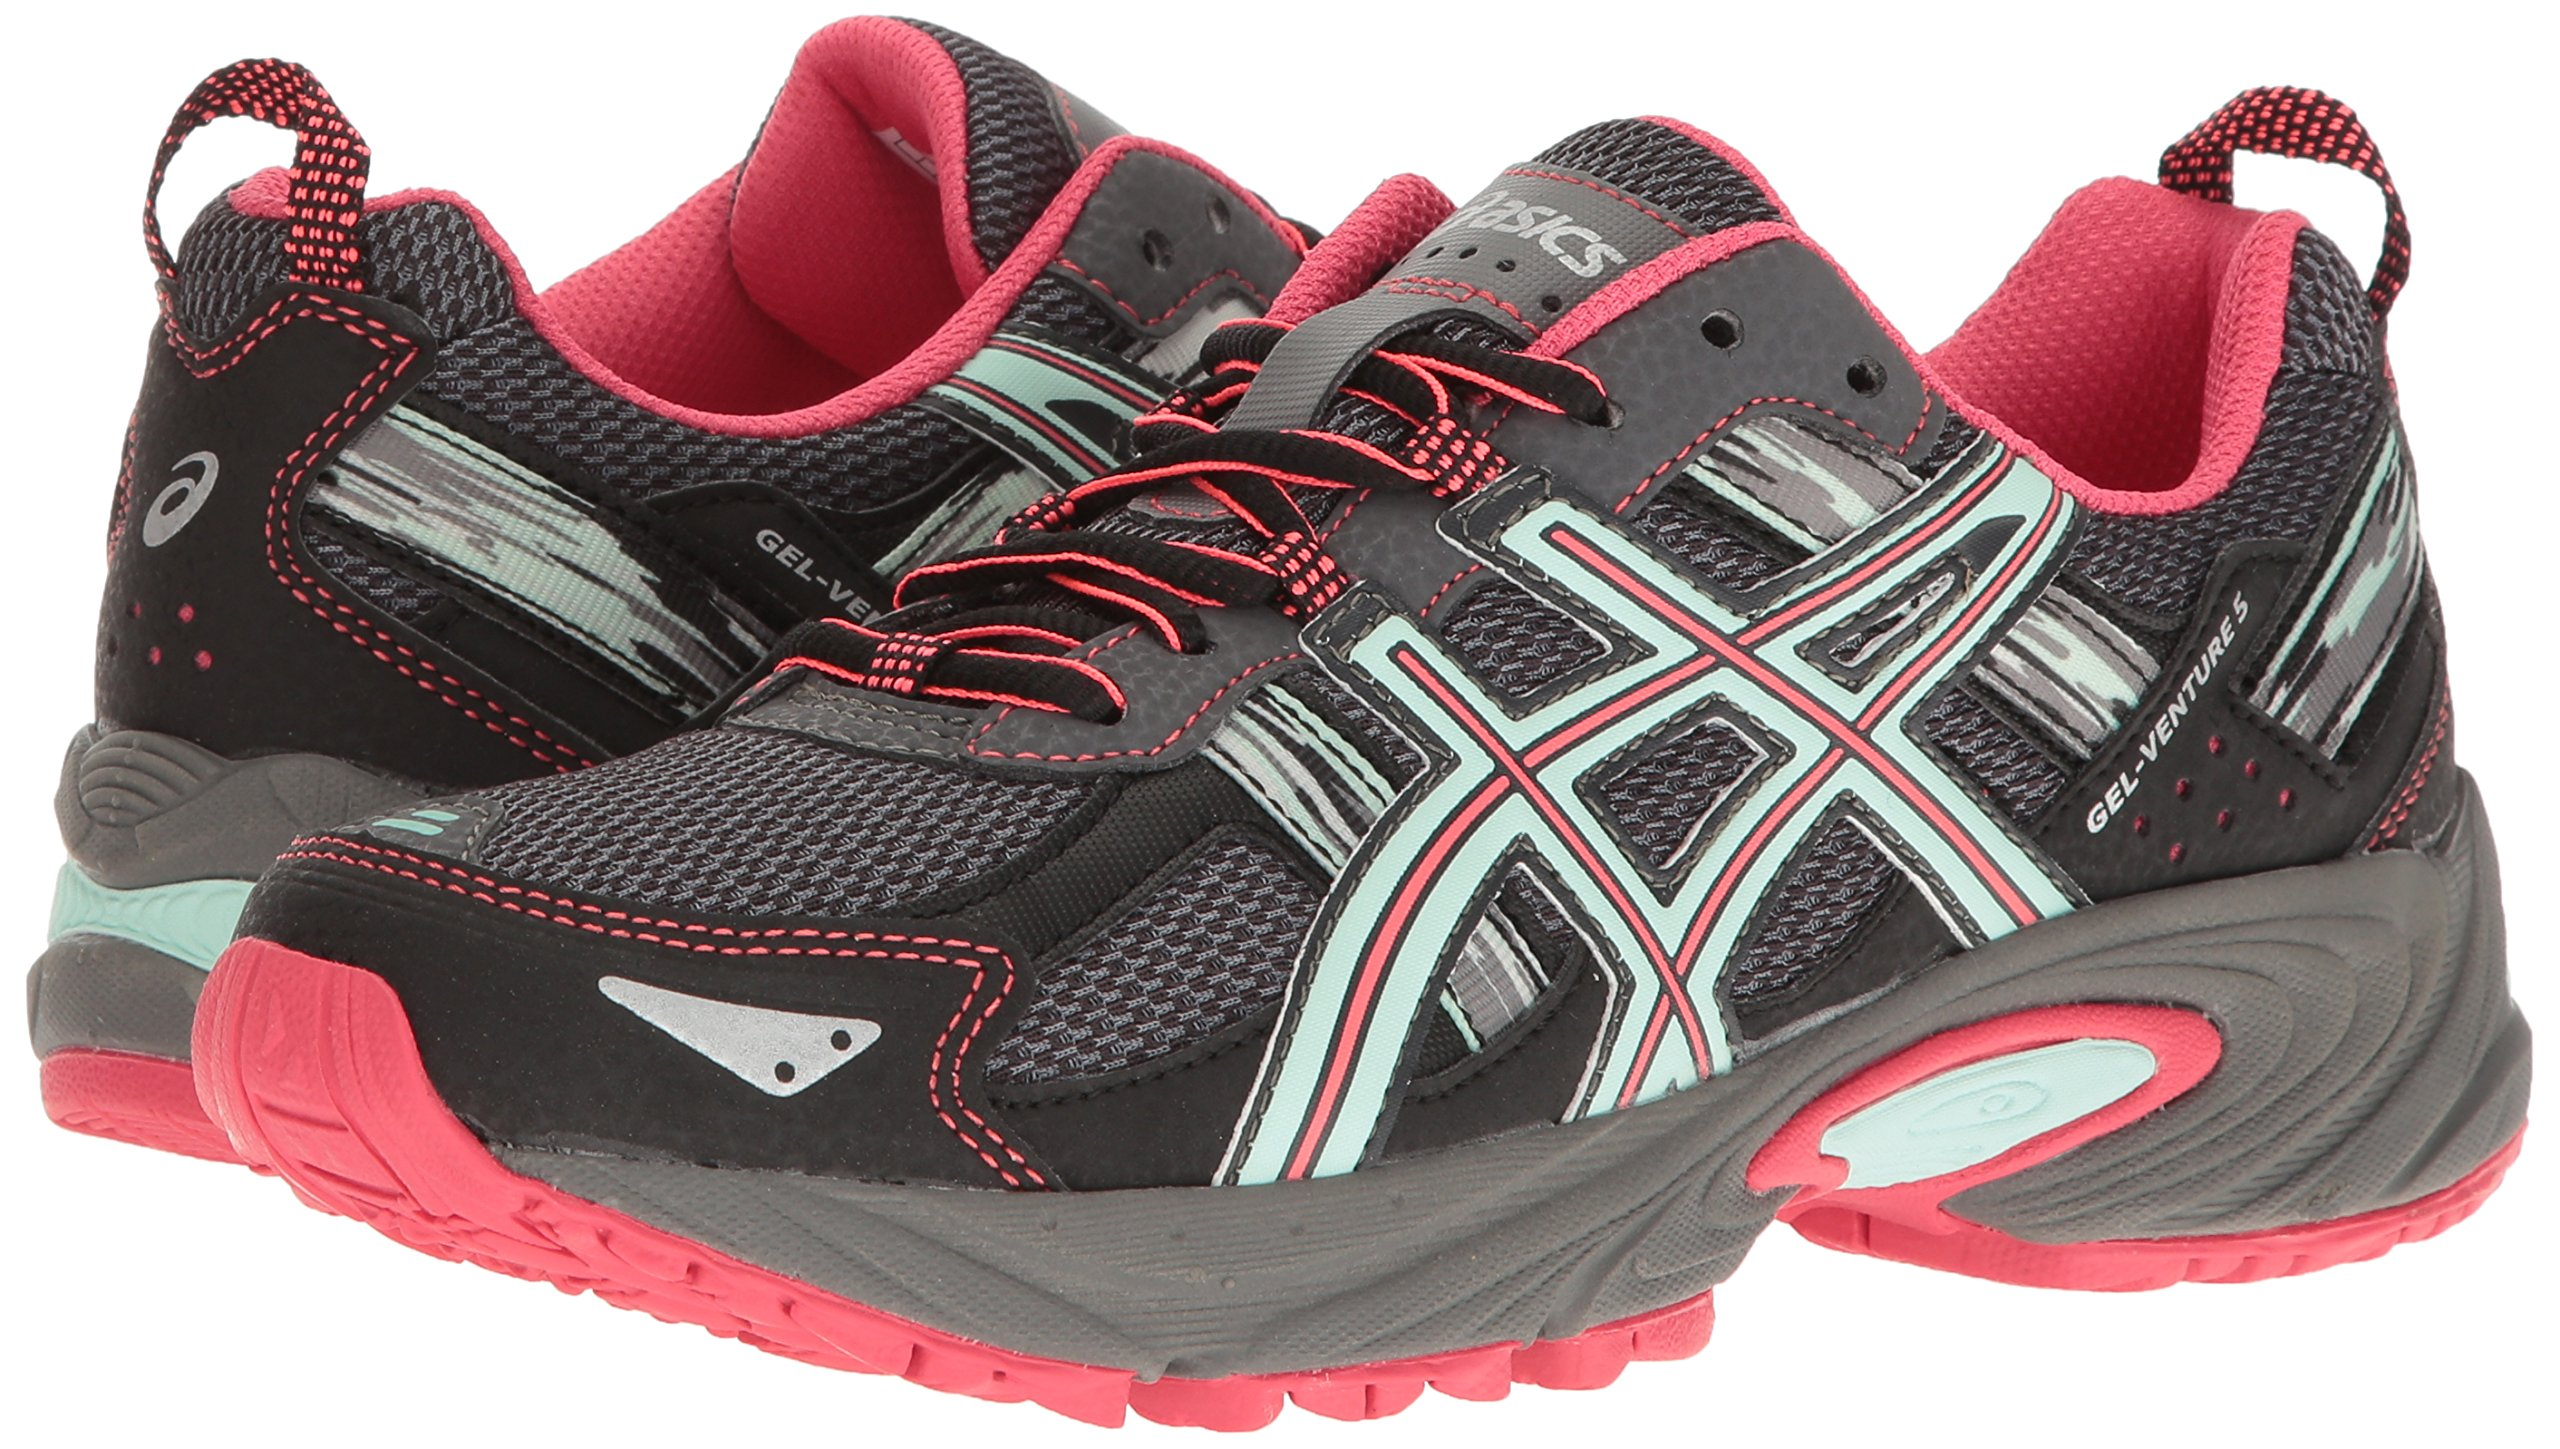 ASICS Women's Gel-Venture 5 Trail Runner, Carbon/Diva Pink/Bay, 9 M US by ASICS (Image #6)